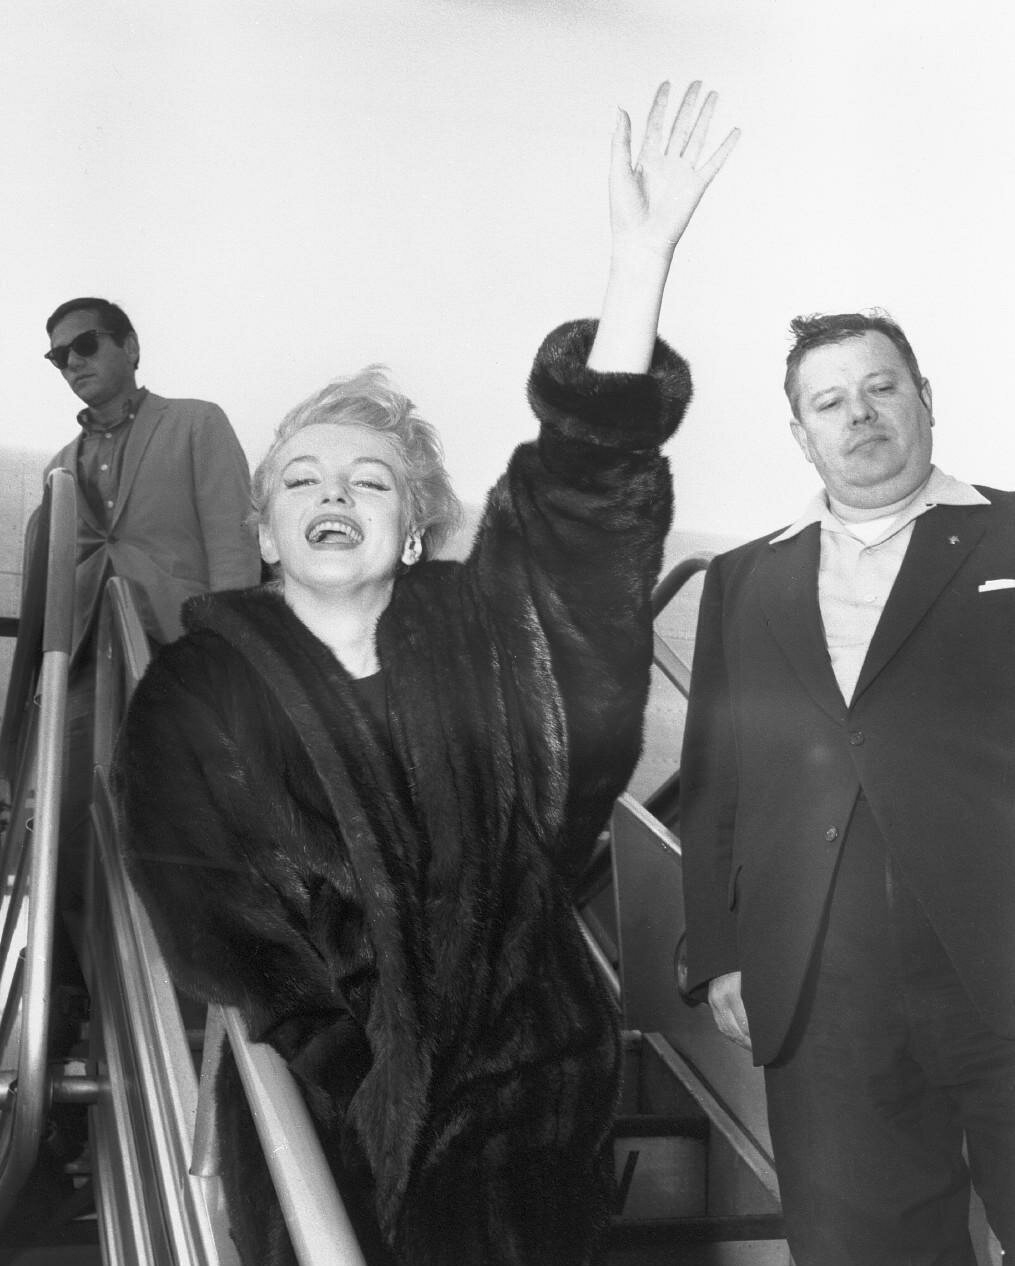 Actress Marilyn Monroe Waving to Crowd